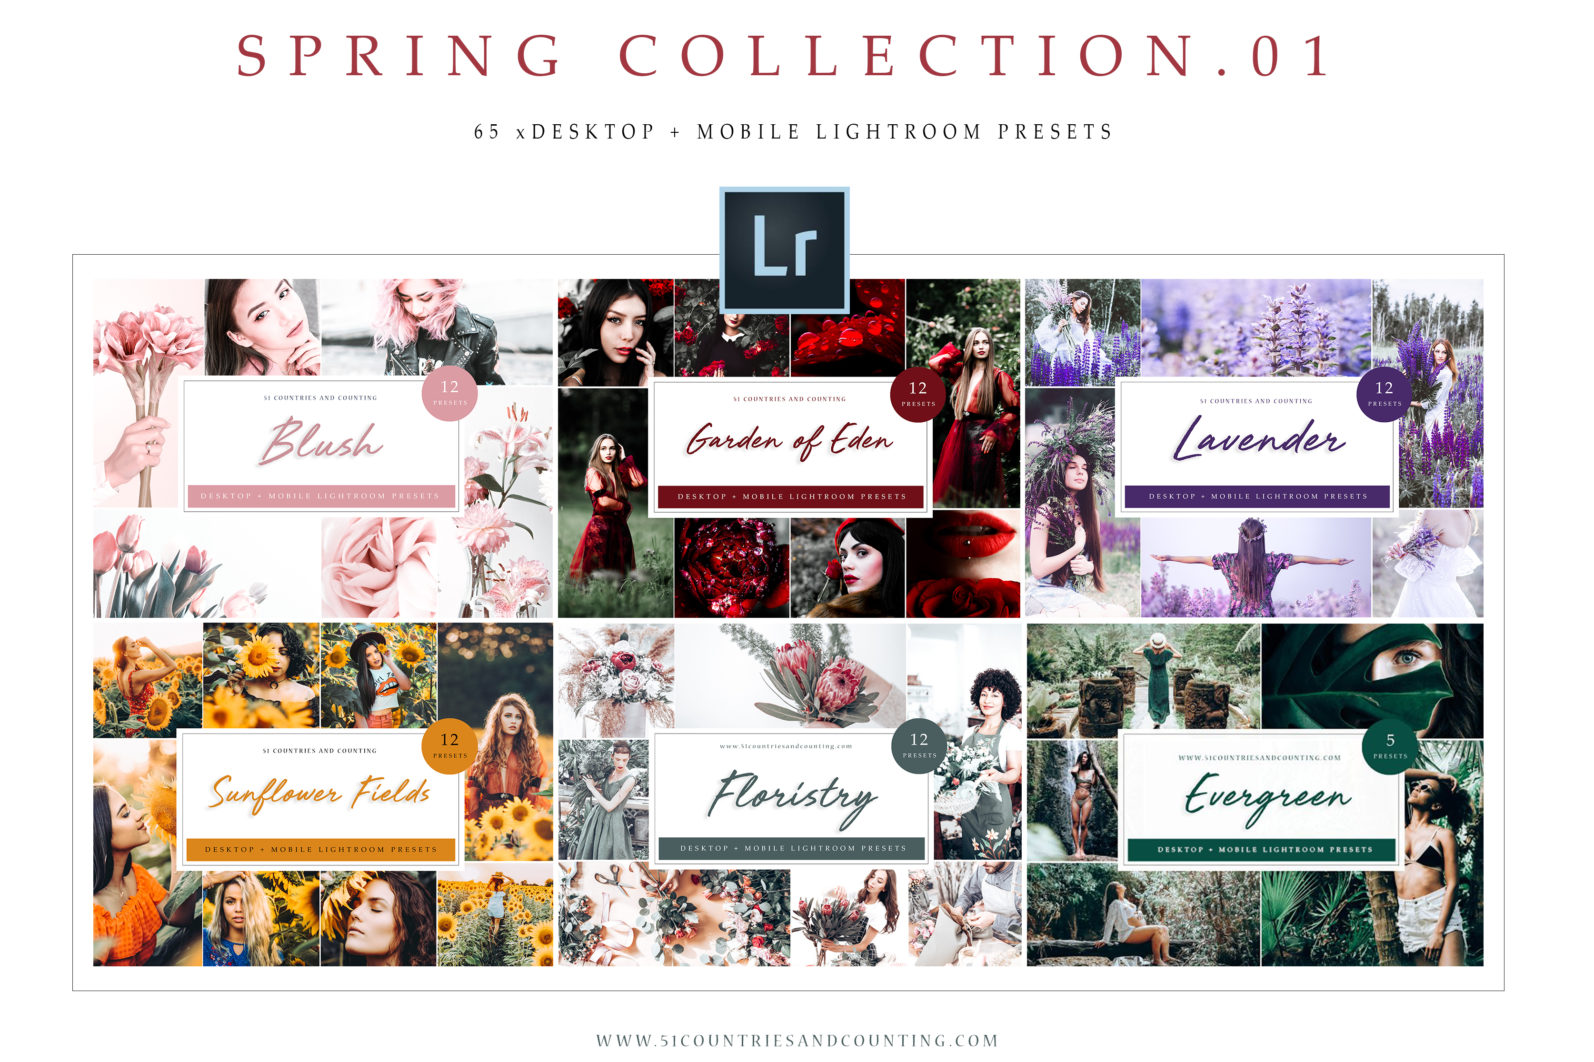 65 x Lightroom Presets (Mobile and Desktop Bundle) inspired by Spring - Spring Collection Preview scaled -